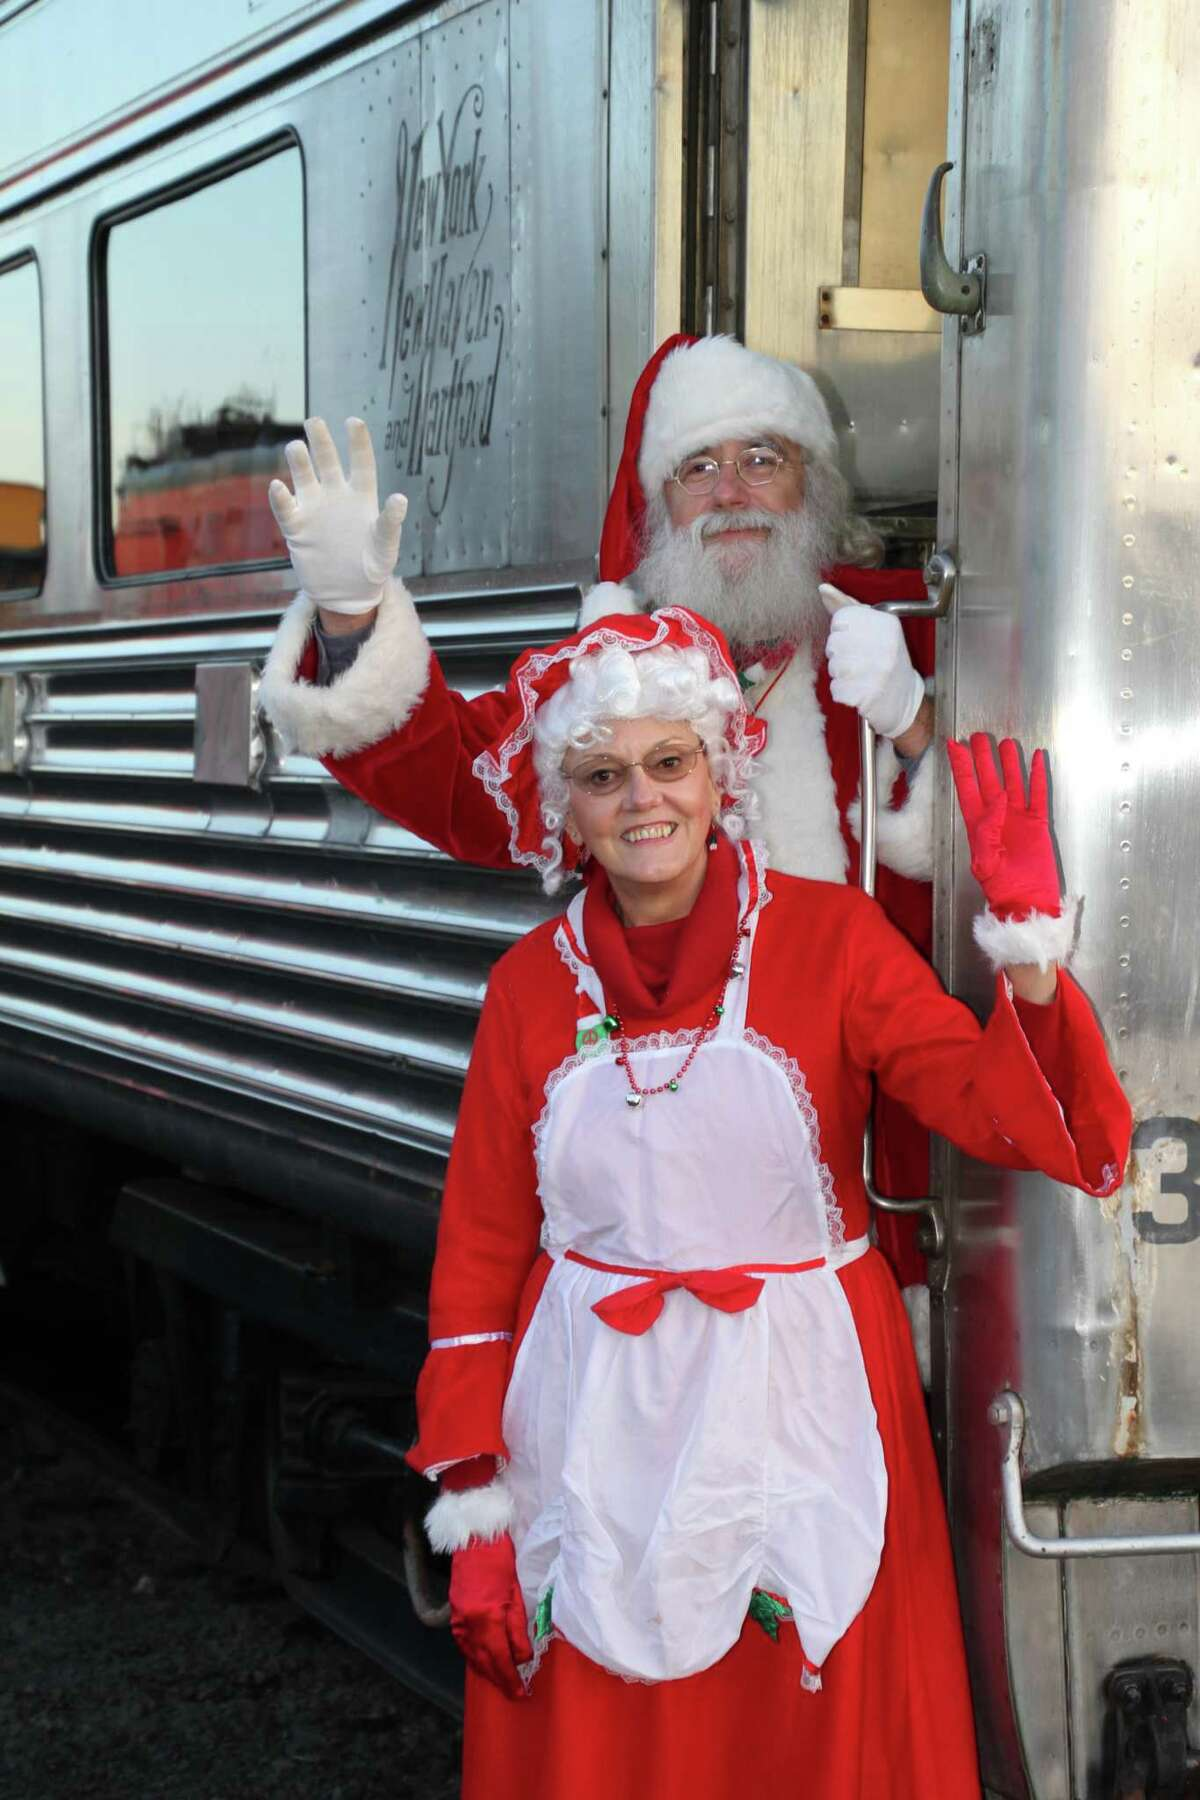 Santa and Mrs. Claus will once again pay a visit to the Danbury Railway Museum December 7-8, 14-15 and 21-22.